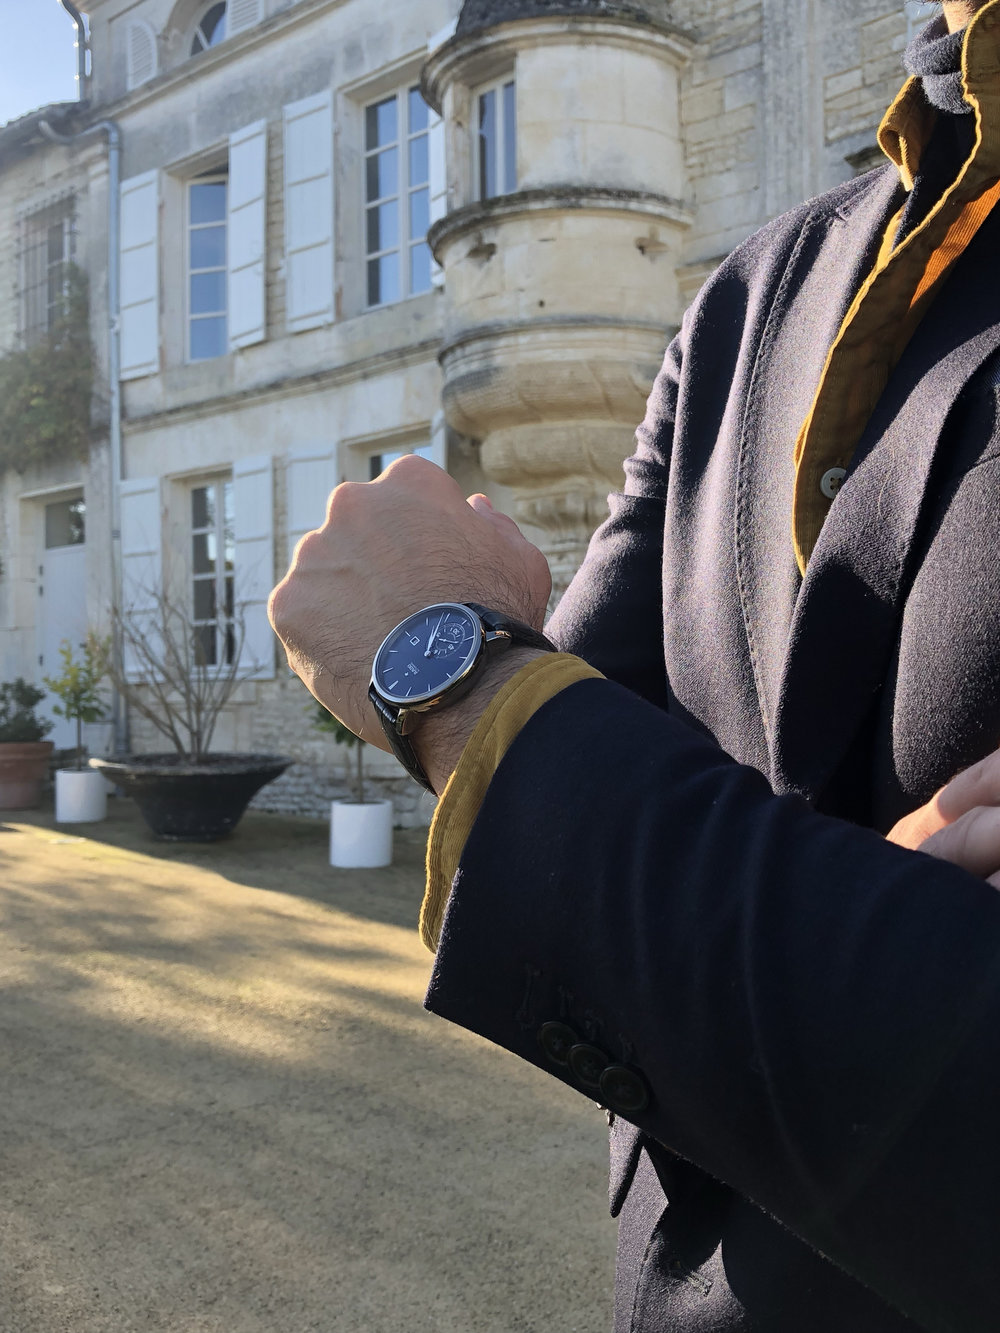 Watch: Rado DiaMaster Petite Seconde